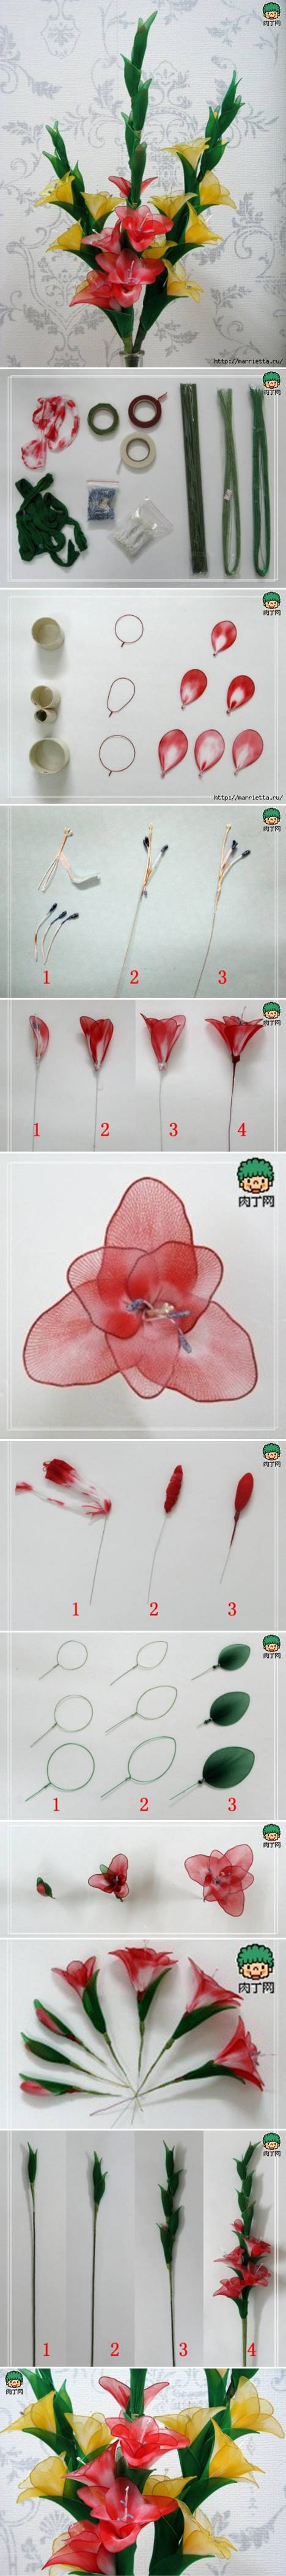 How to make Nylon Galdiolus Flower step by step DIY tutorial instructions